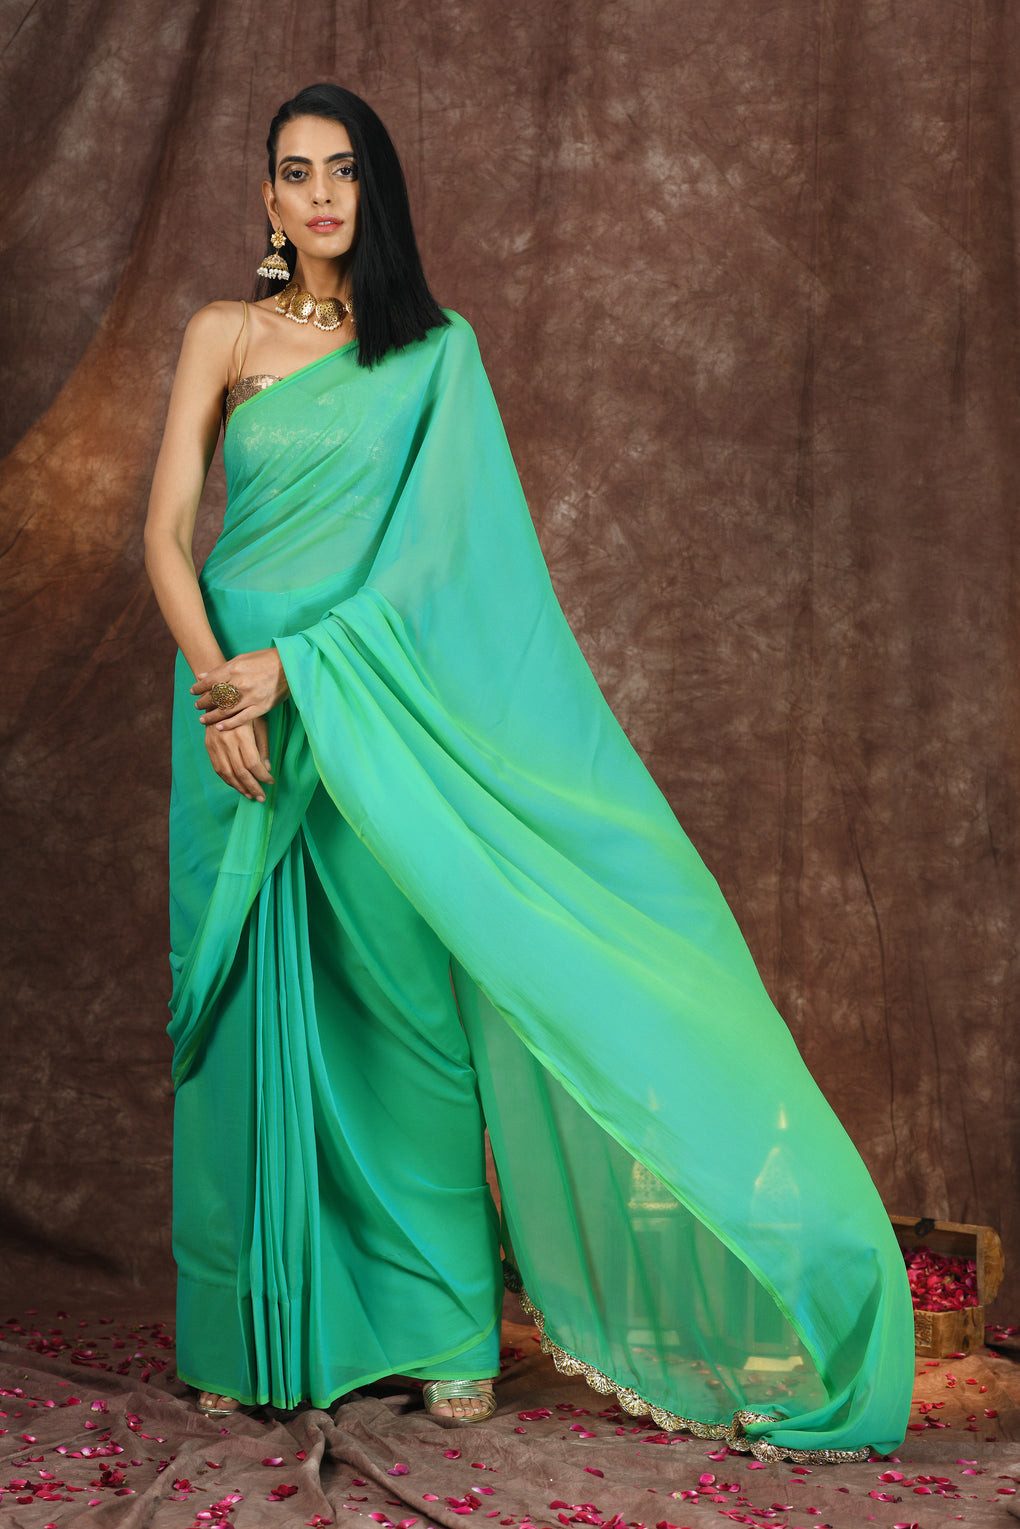 Green Chiffon Saree with Lace on Edge